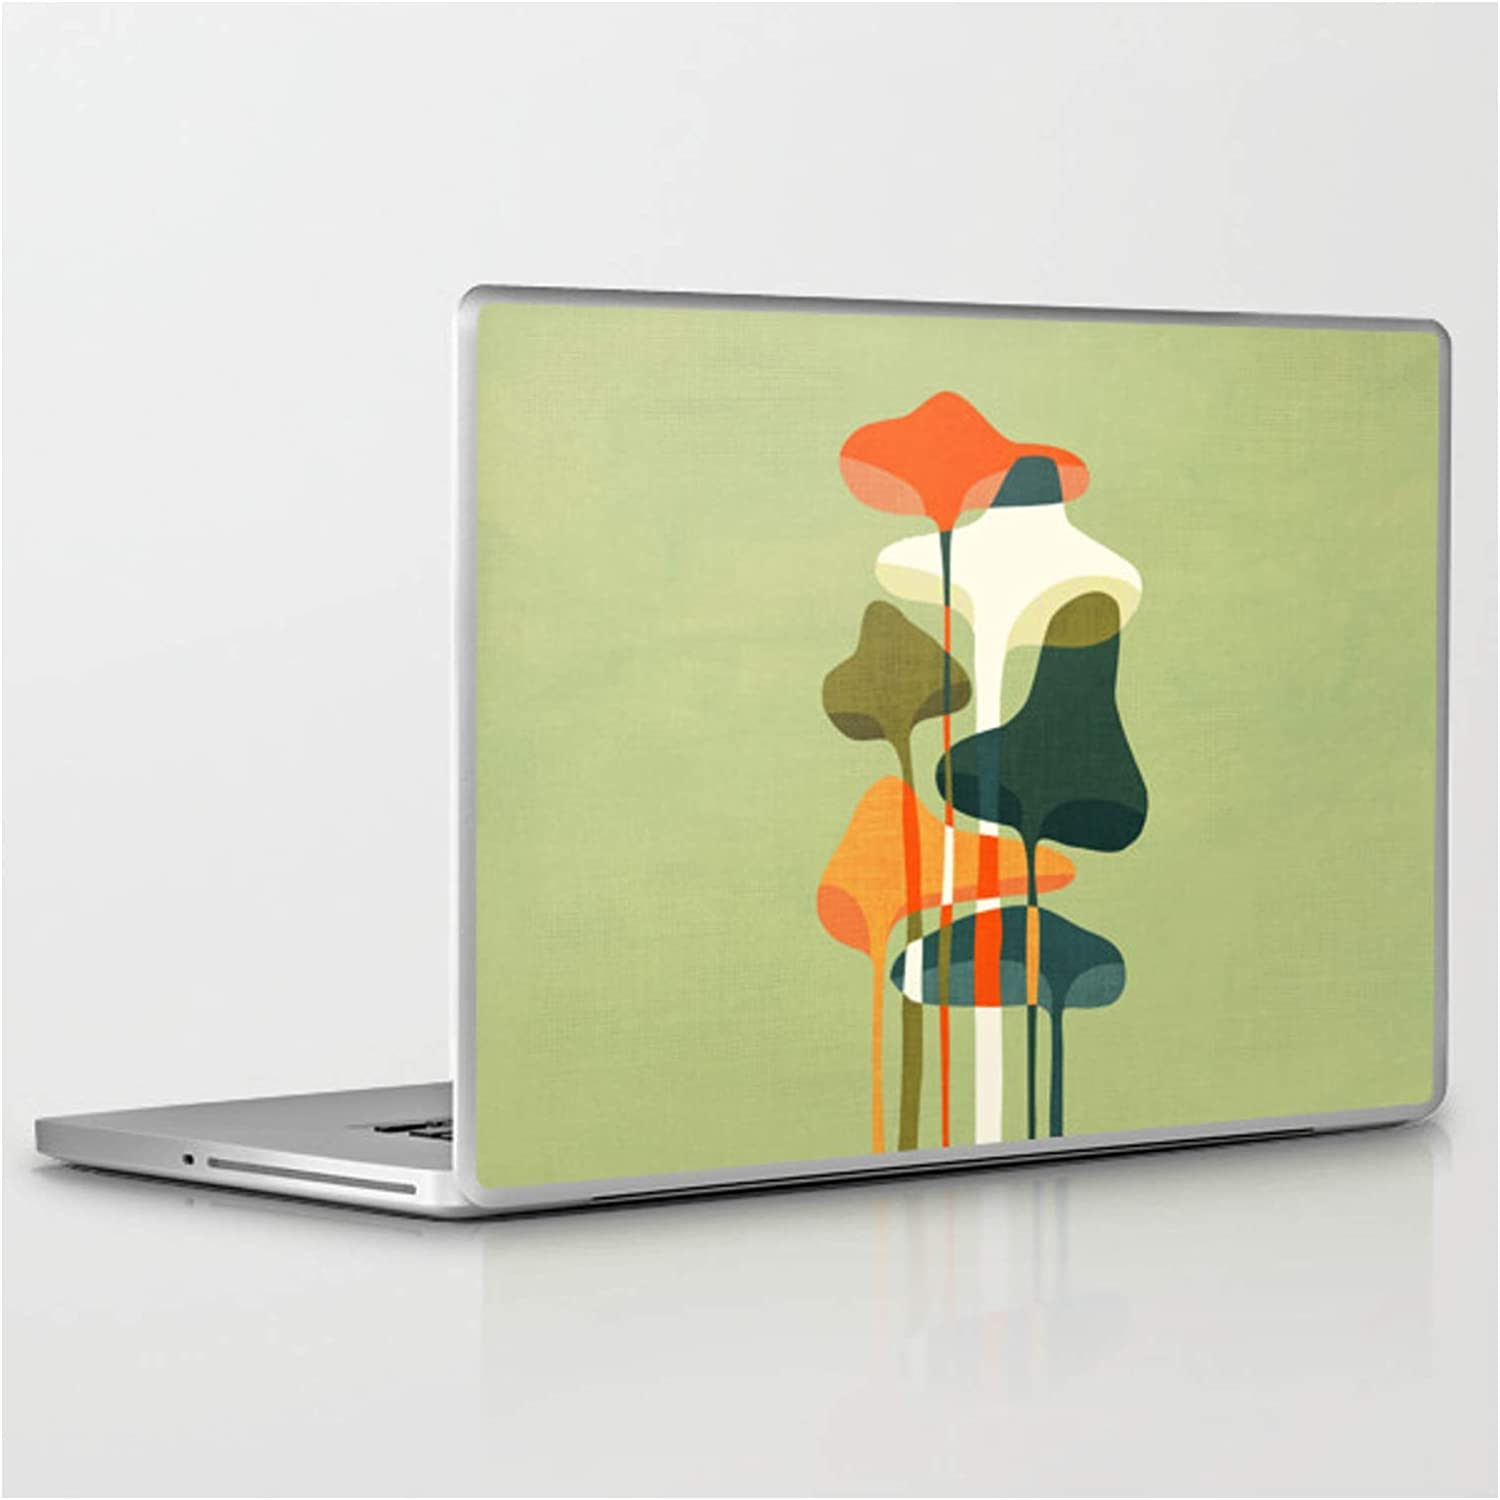 Little Mushroom by Picomodi on Laptop Recommended Skin Tablet PC Lap Ranking TOP12 17